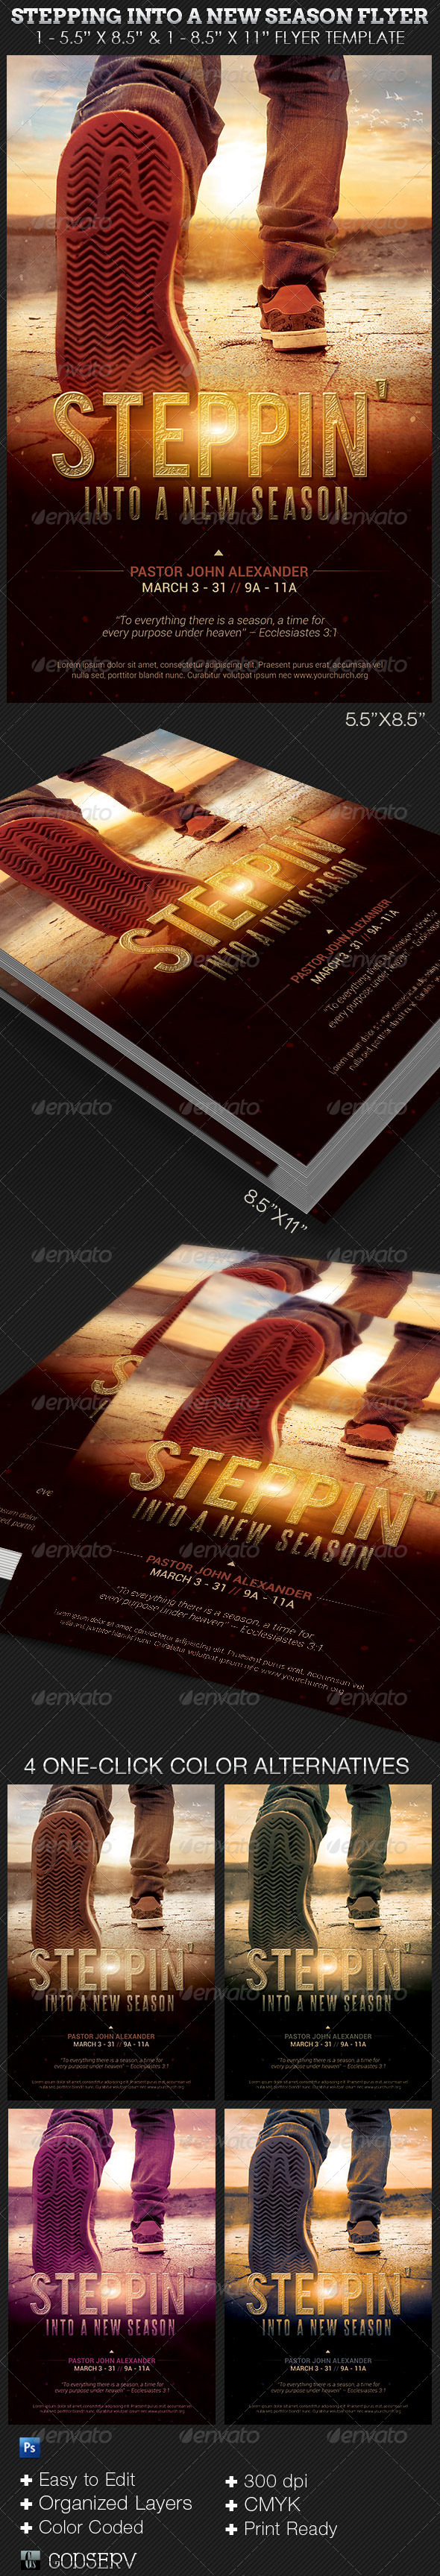 GraphicRiver Stepping Into a New Season Church Flyer Template 6706812